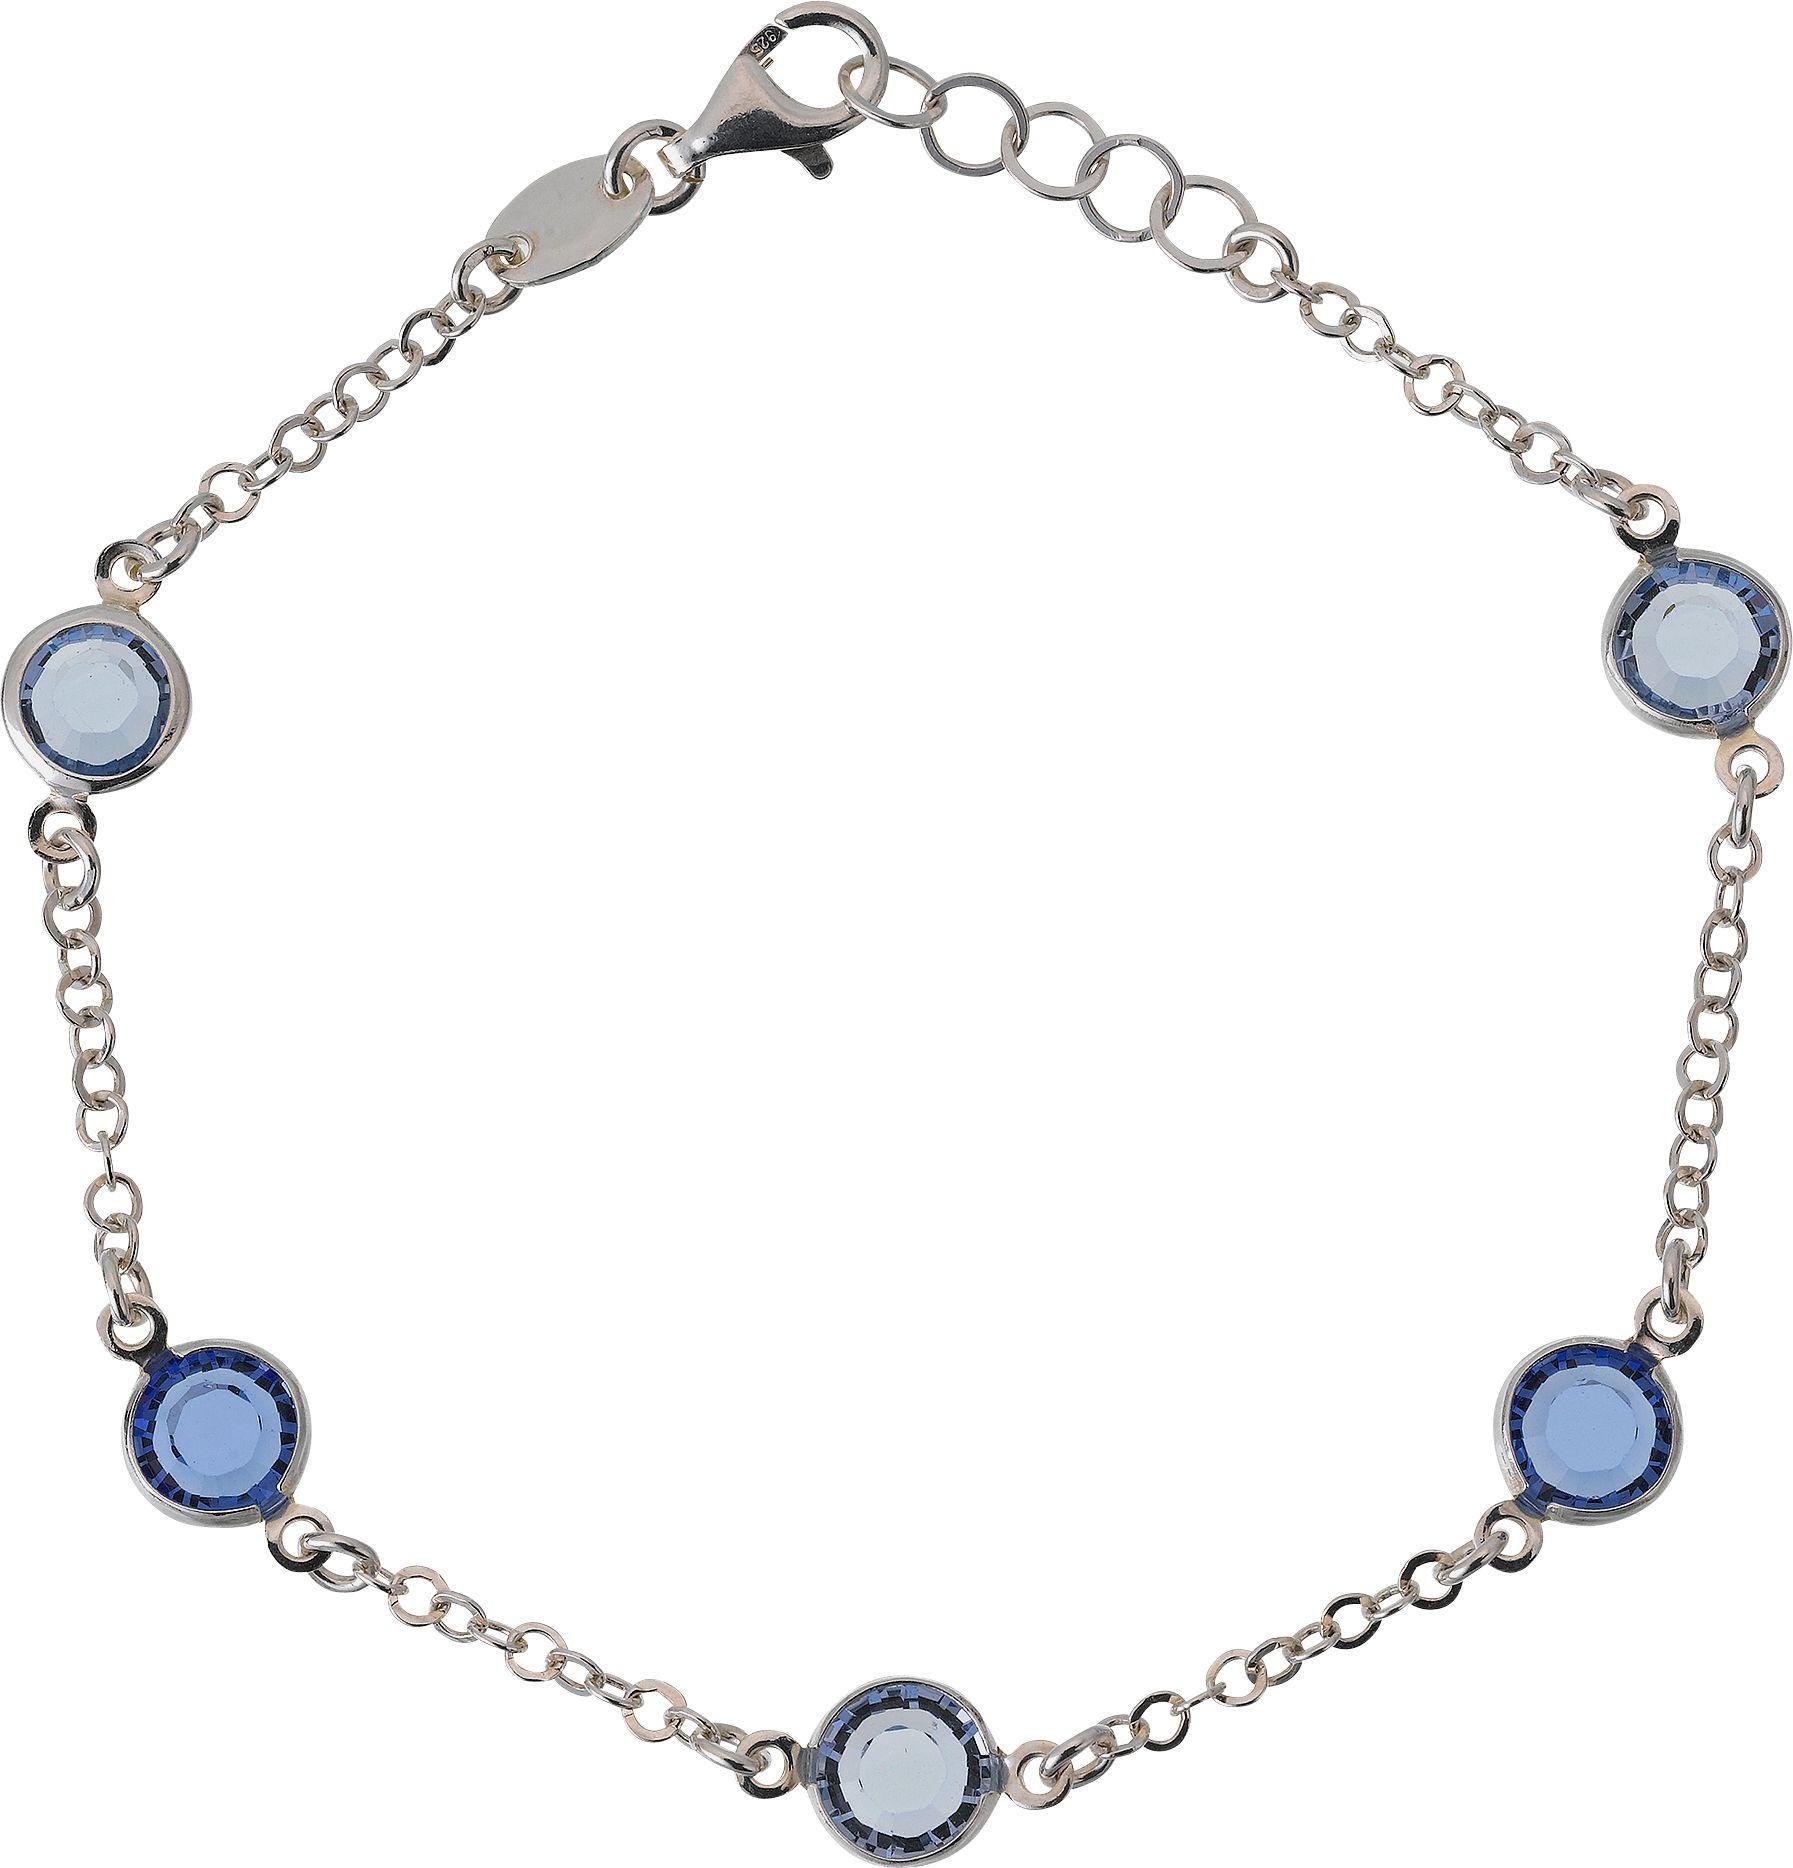 Image of Davvero - Sterling Silver - Blue Crystal Bracelet.